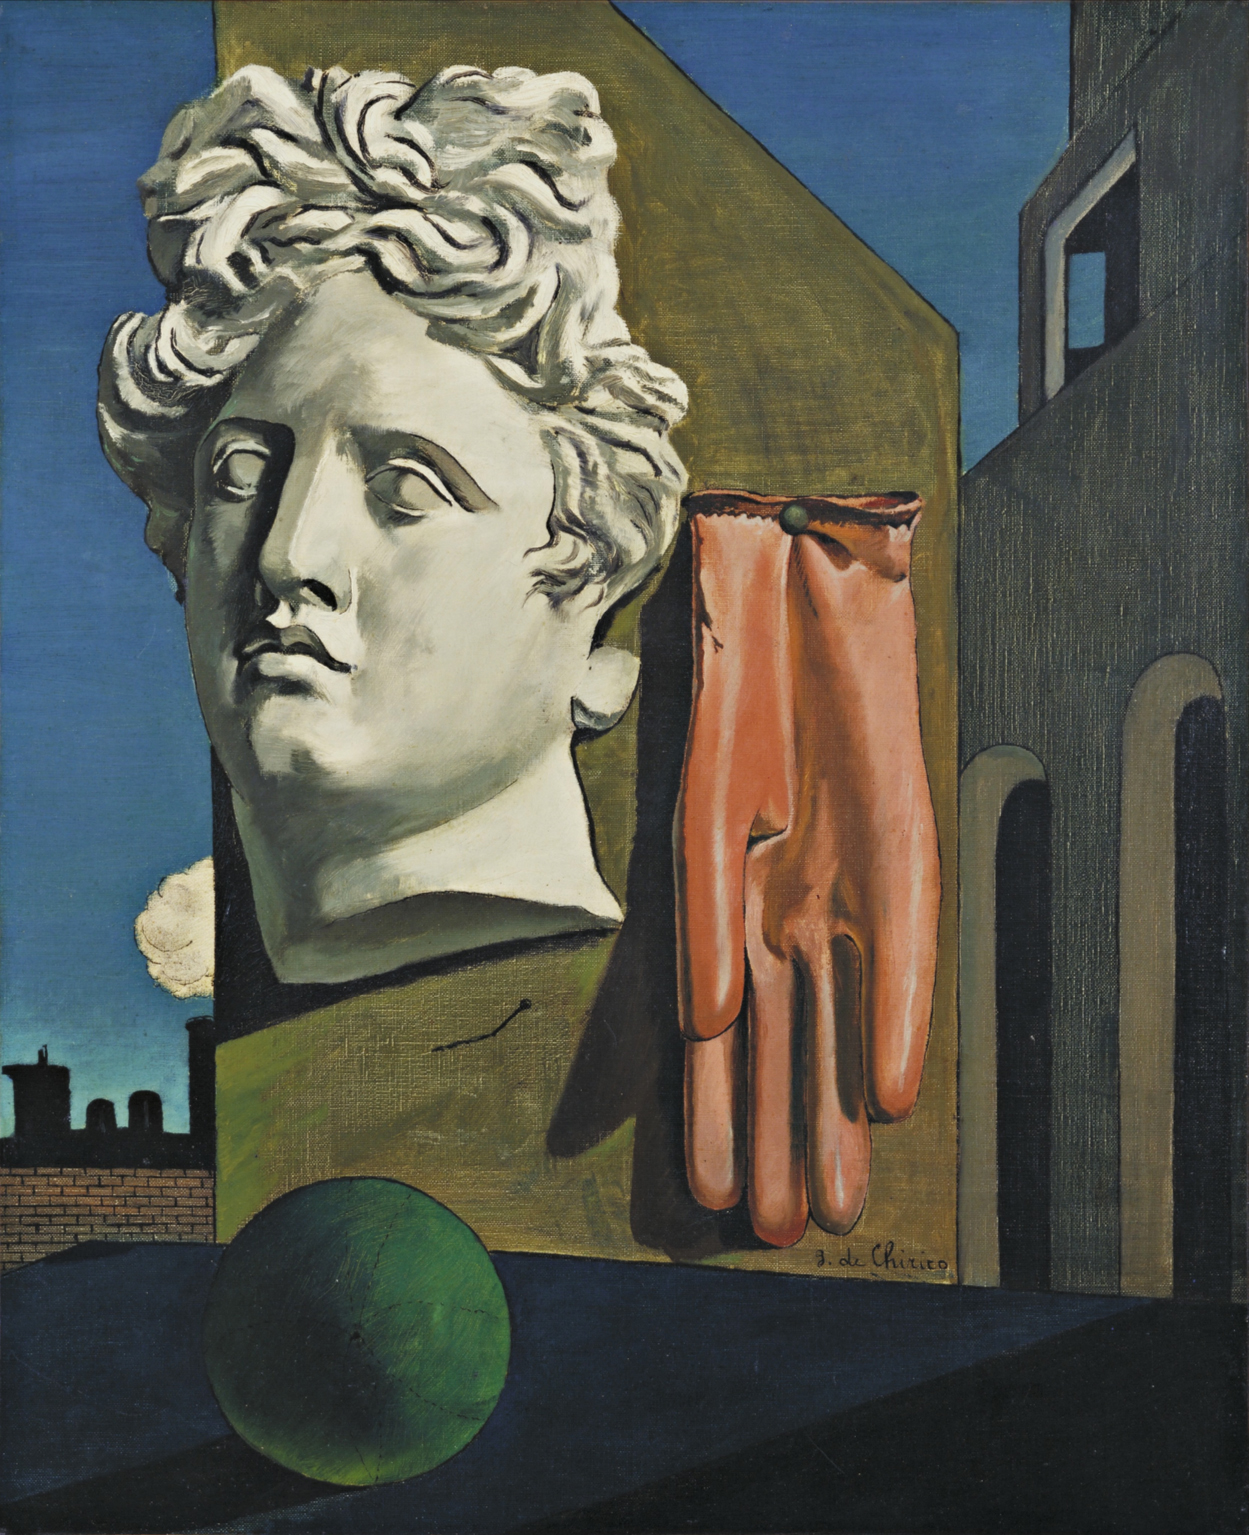 https://i1.wp.com/upload.wikimedia.org/wikipedia/en/1/1b/De_Chirico%27s_Love_Song.jpg